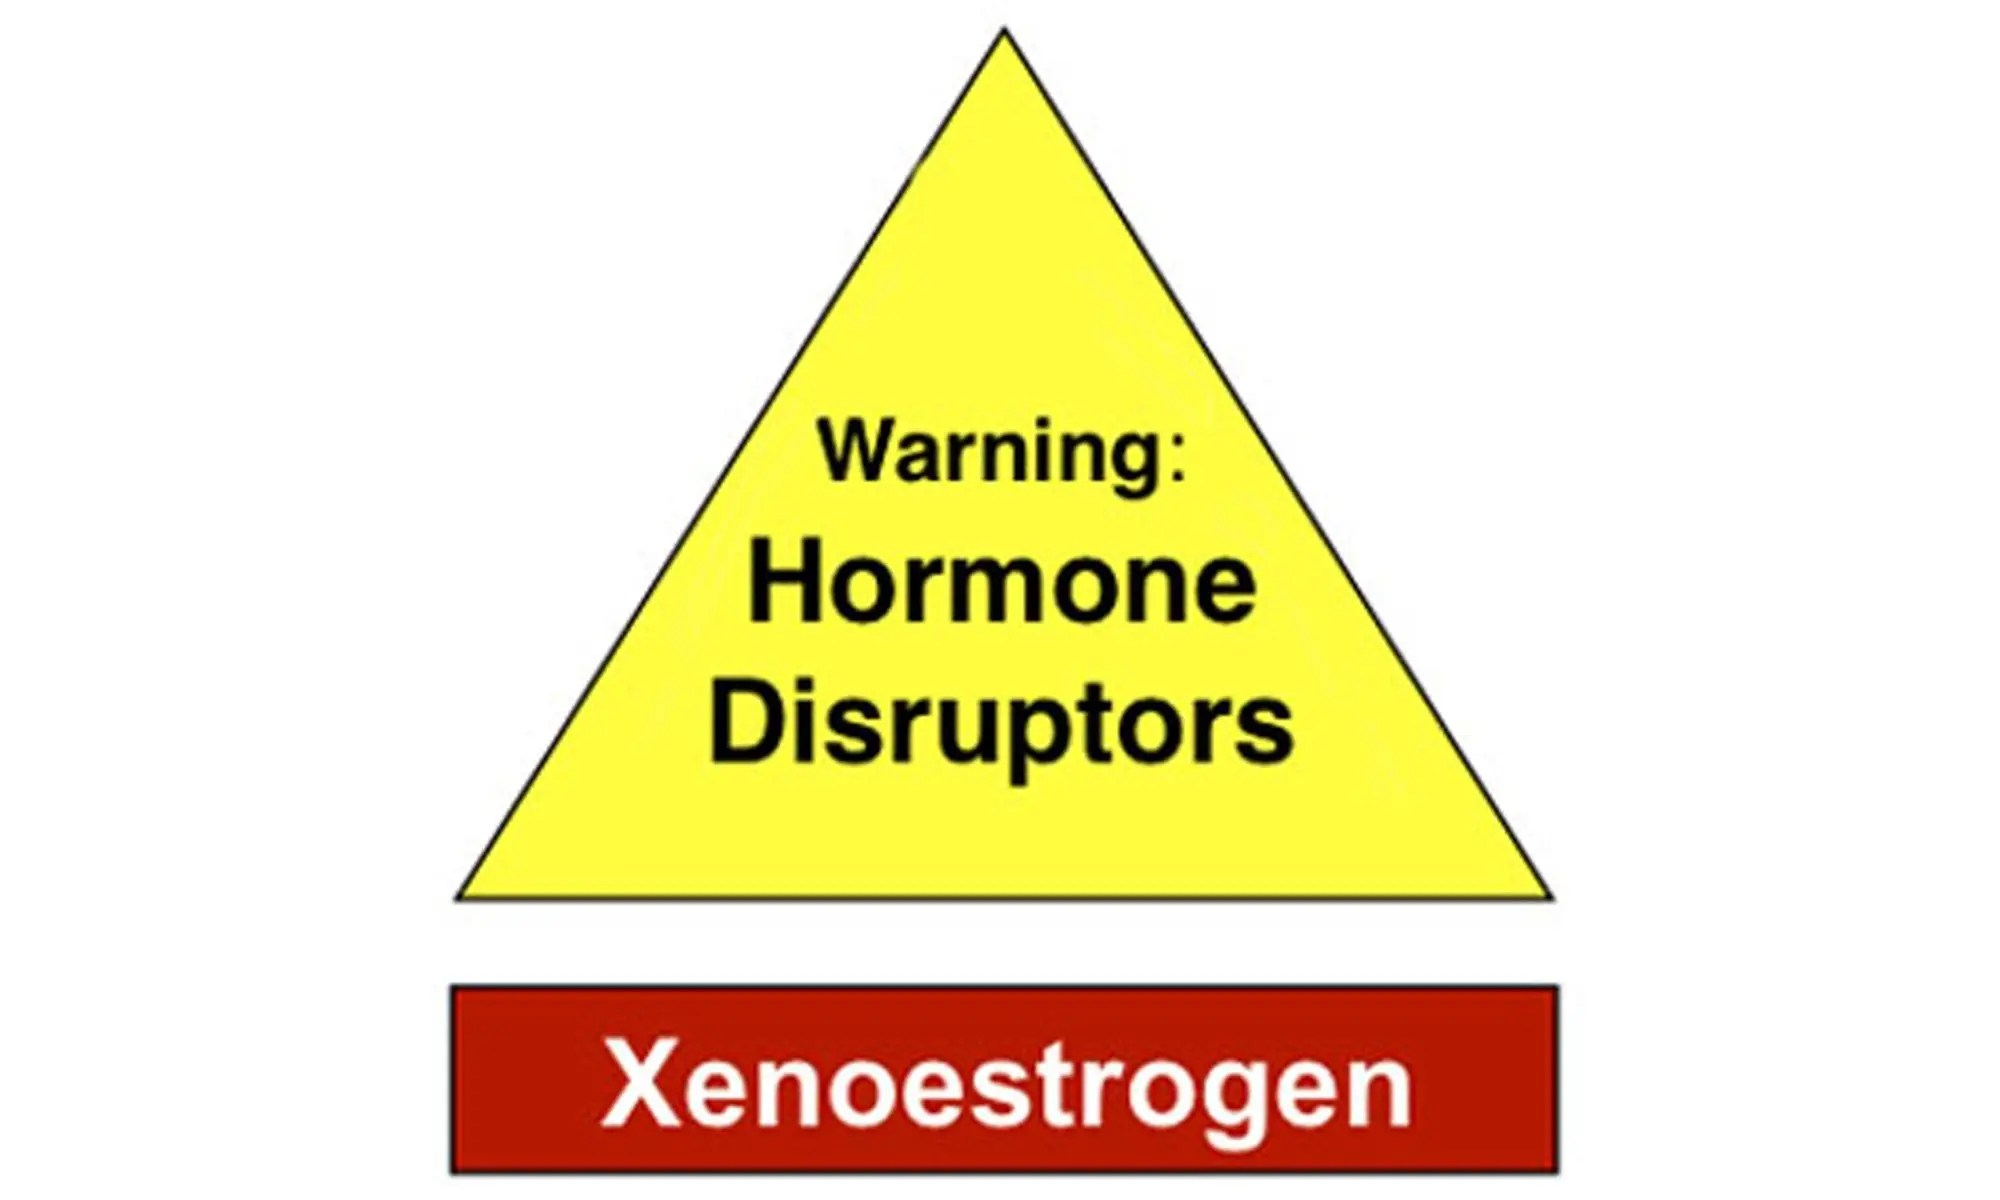 image of Xenoestrogens warning